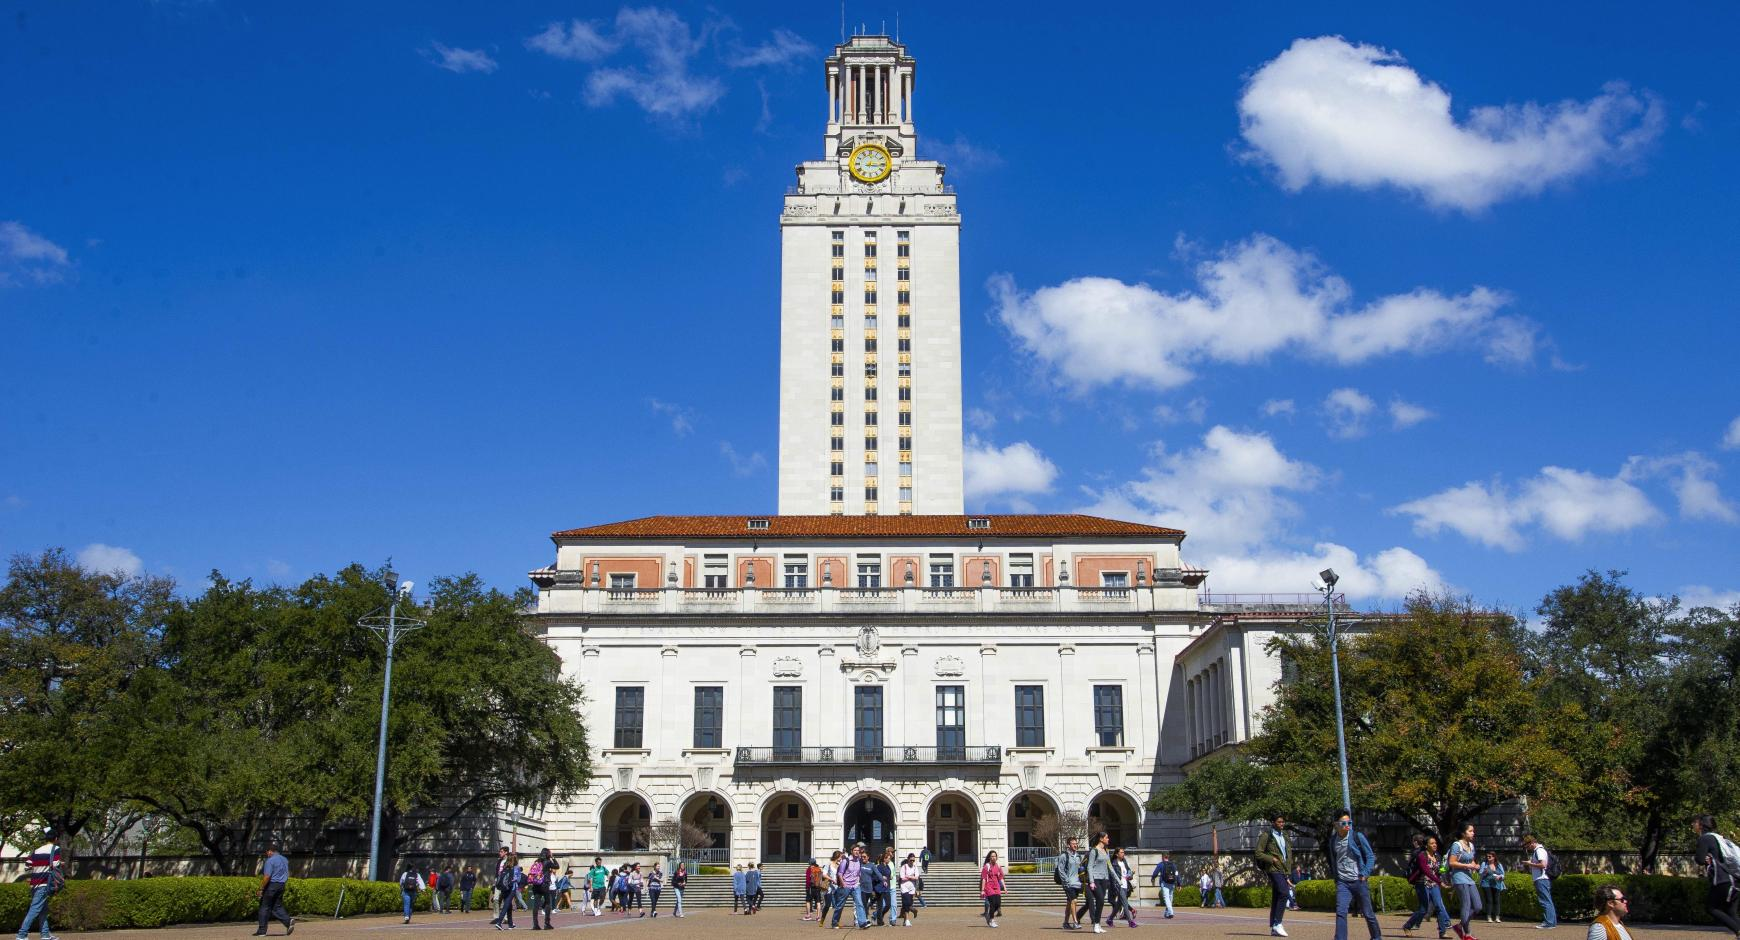 Things to do in Austin - The University of Texas at Austin